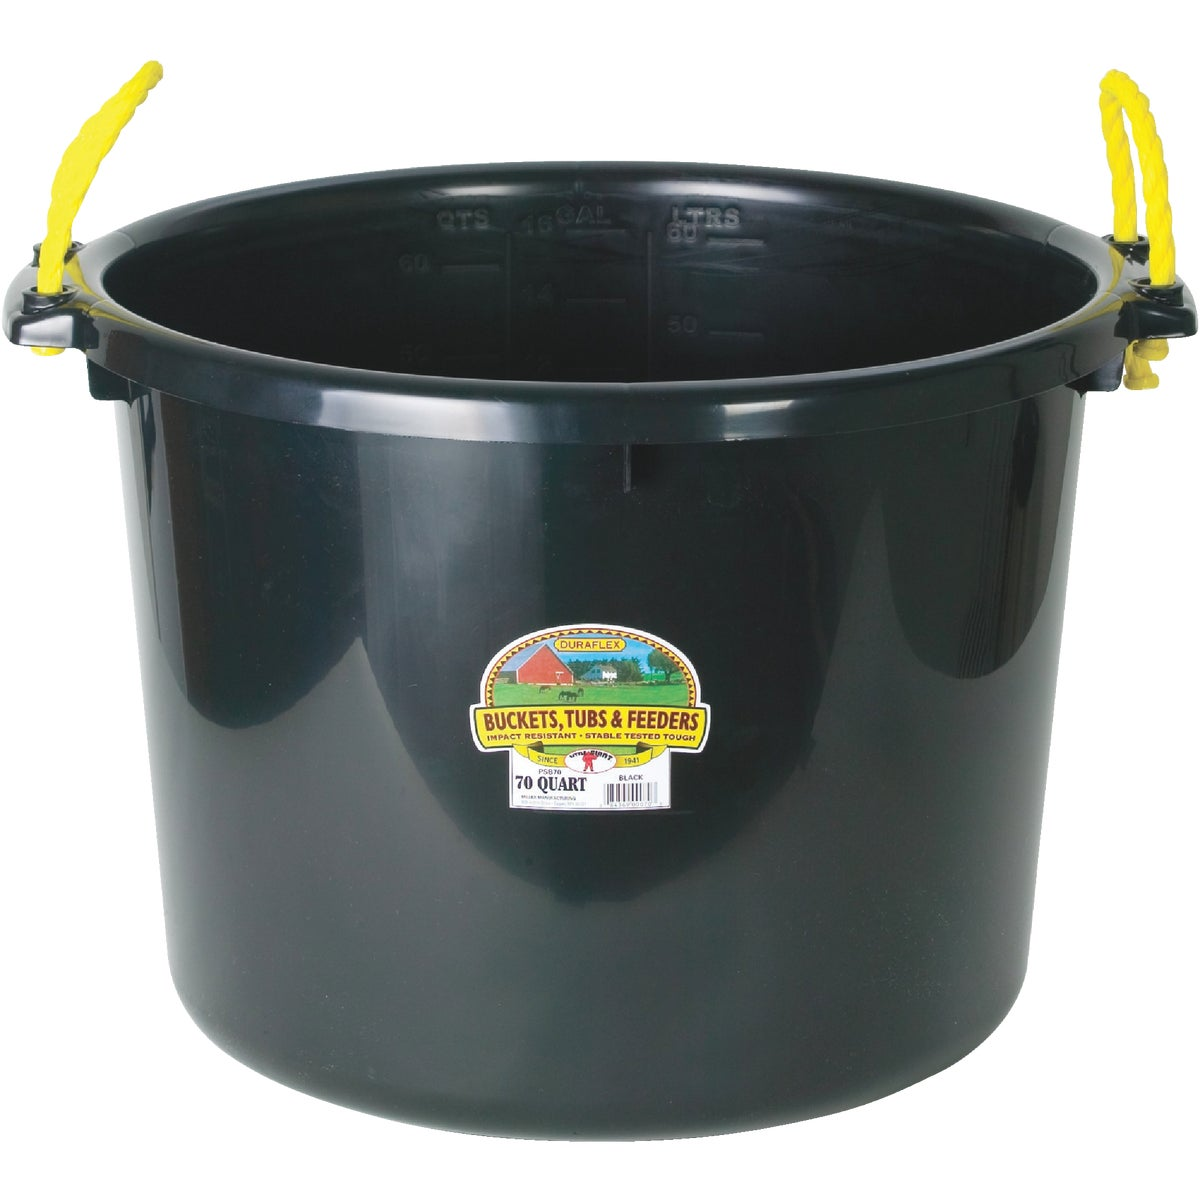 70QT BLACK MUCK BUCKET - PSB70BLACK by Miller Manufacturing